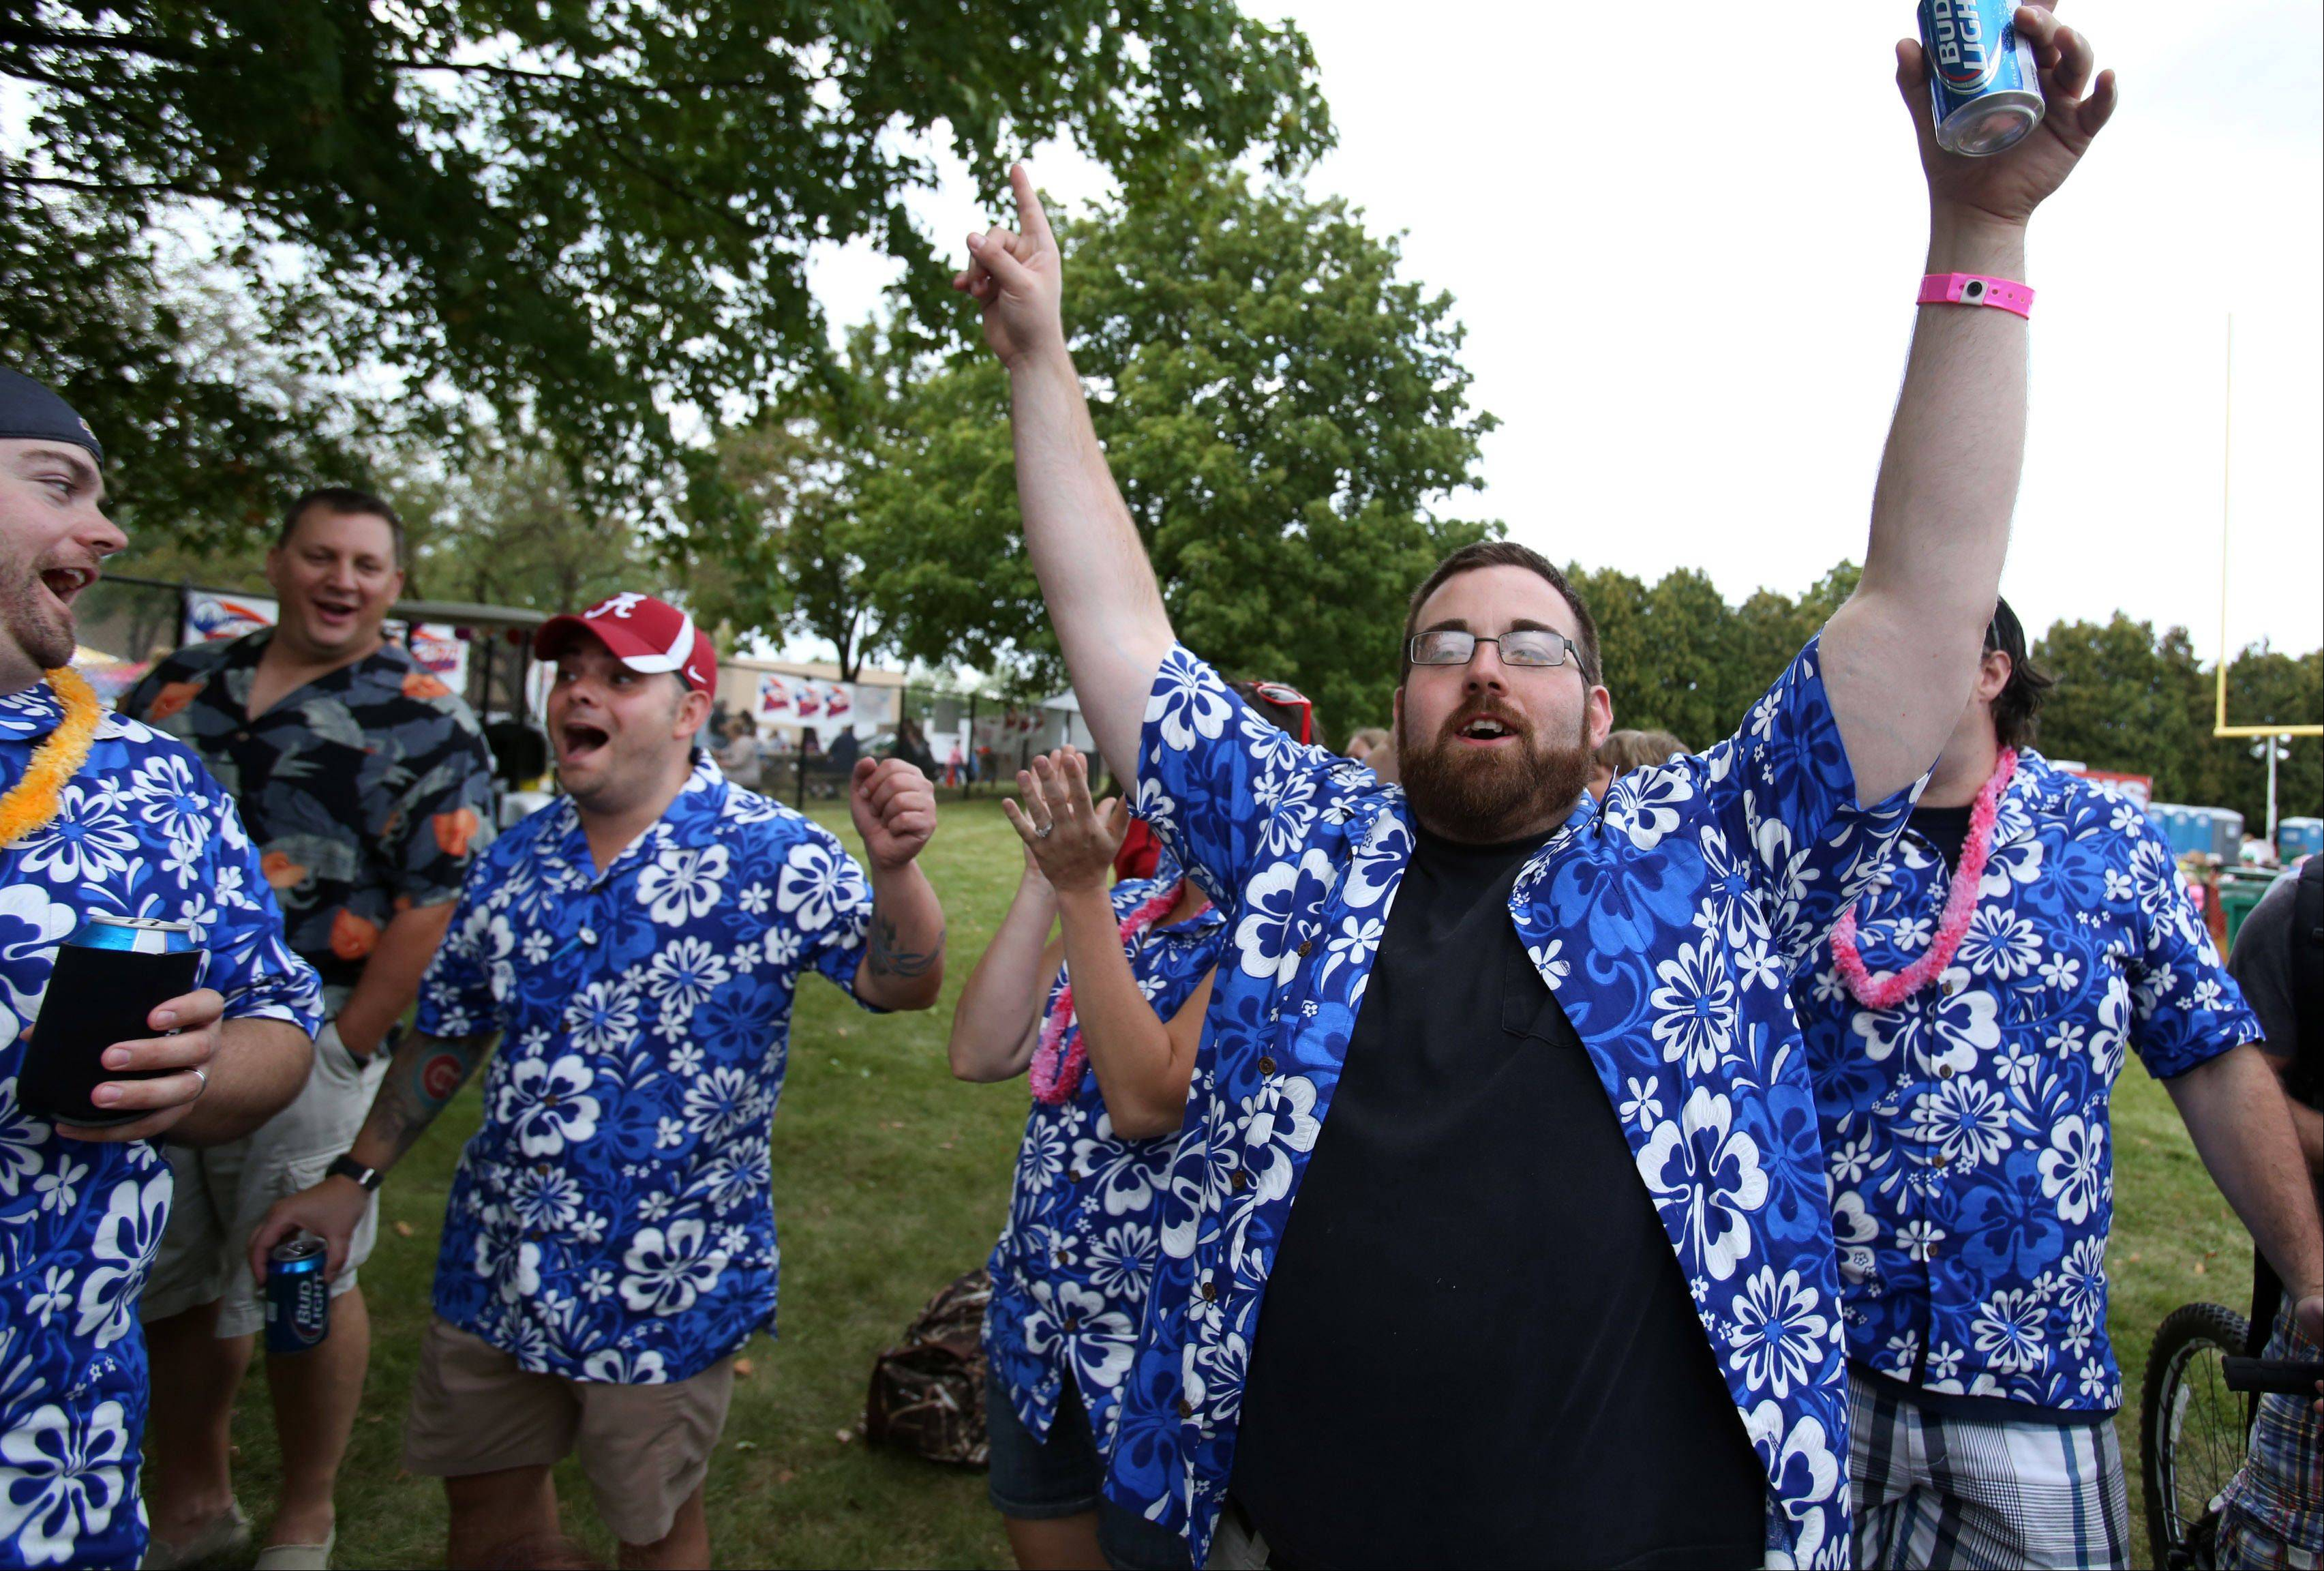 Tim Hoffman of Buffalo Grove, left center, celebrates with Steve Hoffman after Tim took first place in the hamburger category of the the BBQ cookoff Saturday during Buffalo Grove Days in Buffalo Grove. Tim also took third in the chicken category.